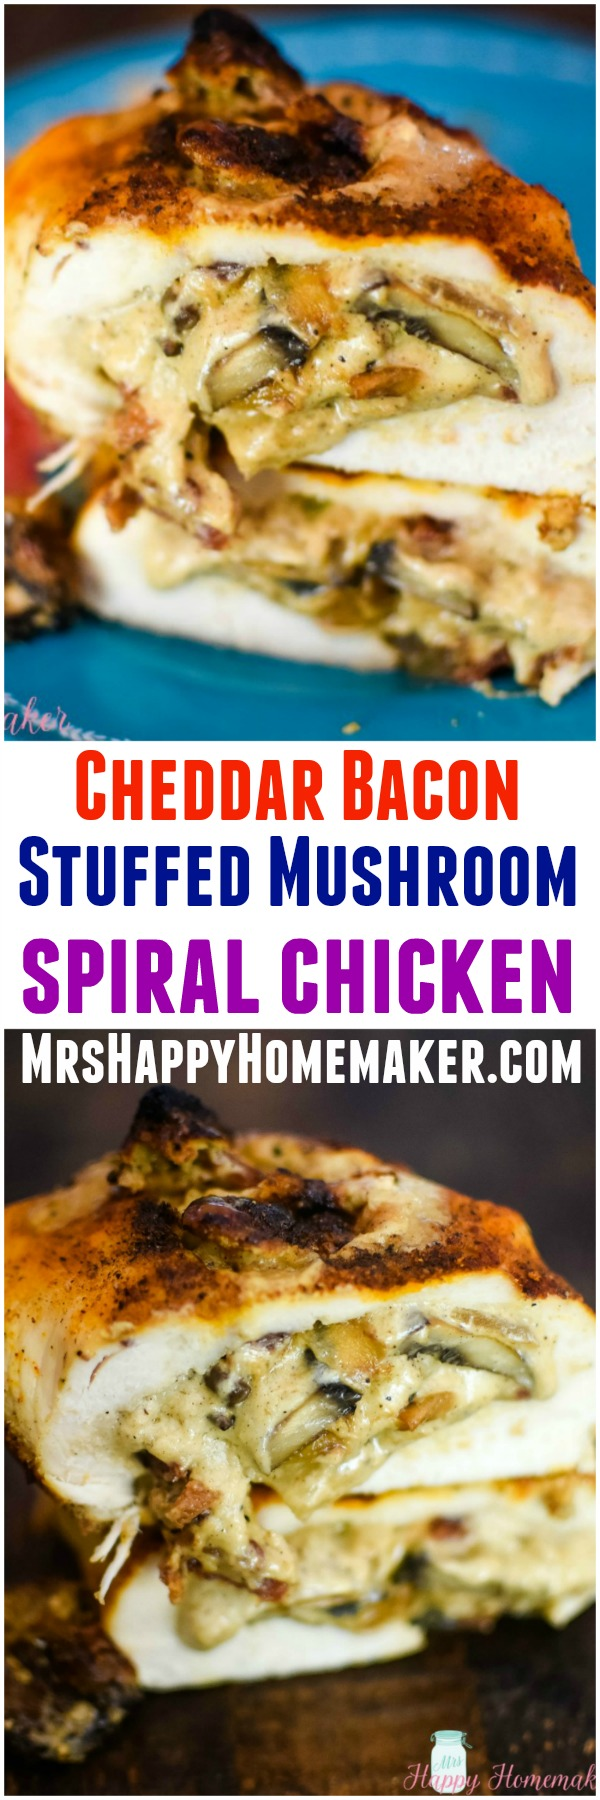 Stuffed Mushroom Spiral Chicken - I took my cheddar bacon stuffed mushrooms and turned them into a filling for this spiral chicken recipe. It's so good! | MrsHappyHomemaker.com @thathousewife